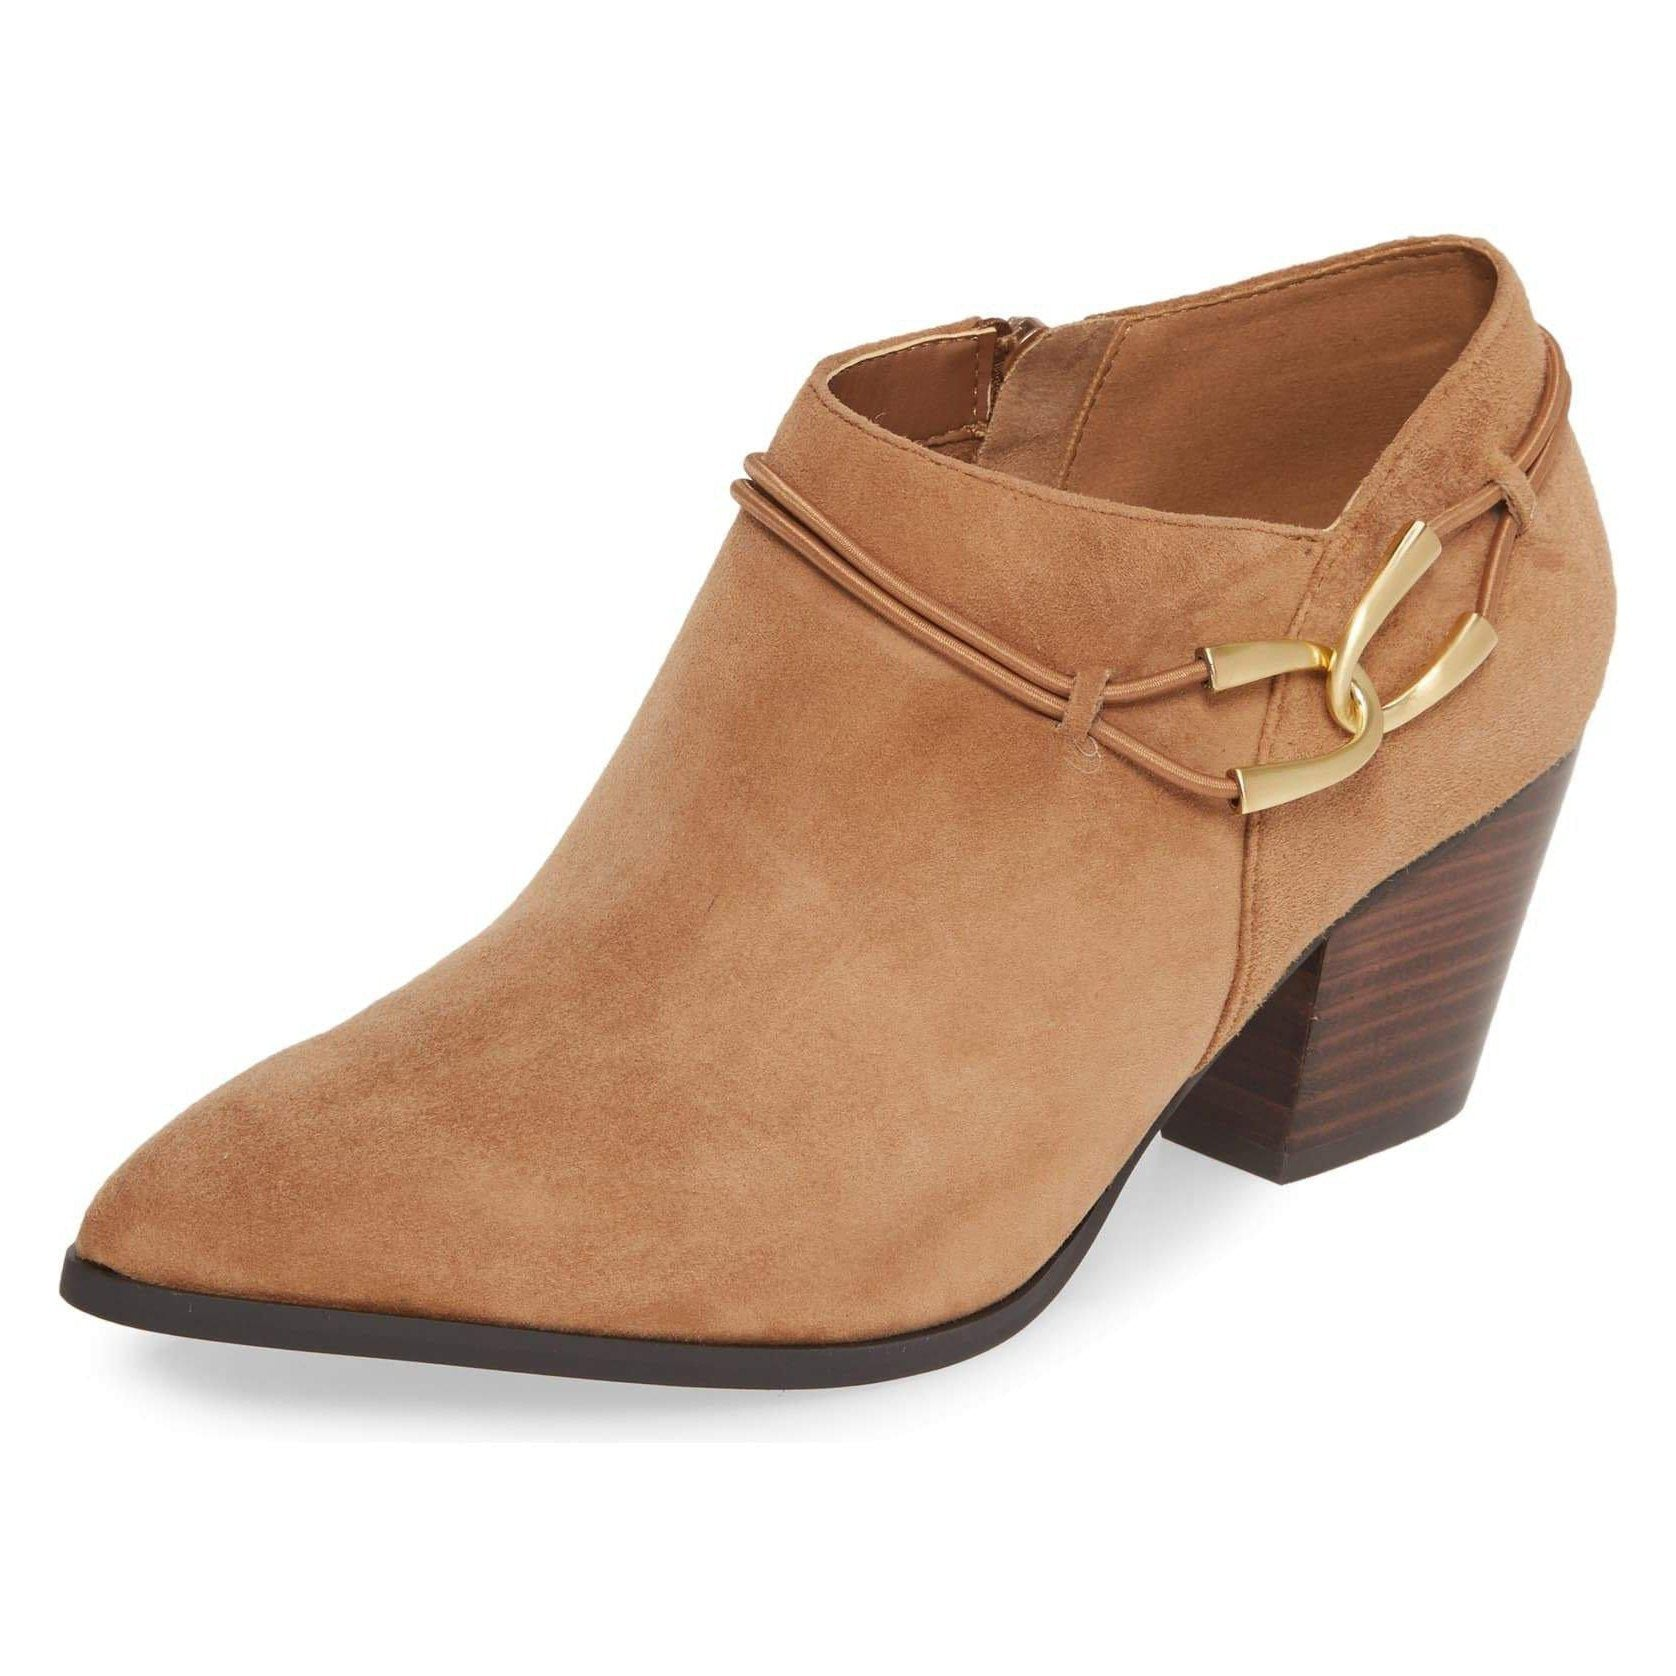 Leather Esme Ankle Boots